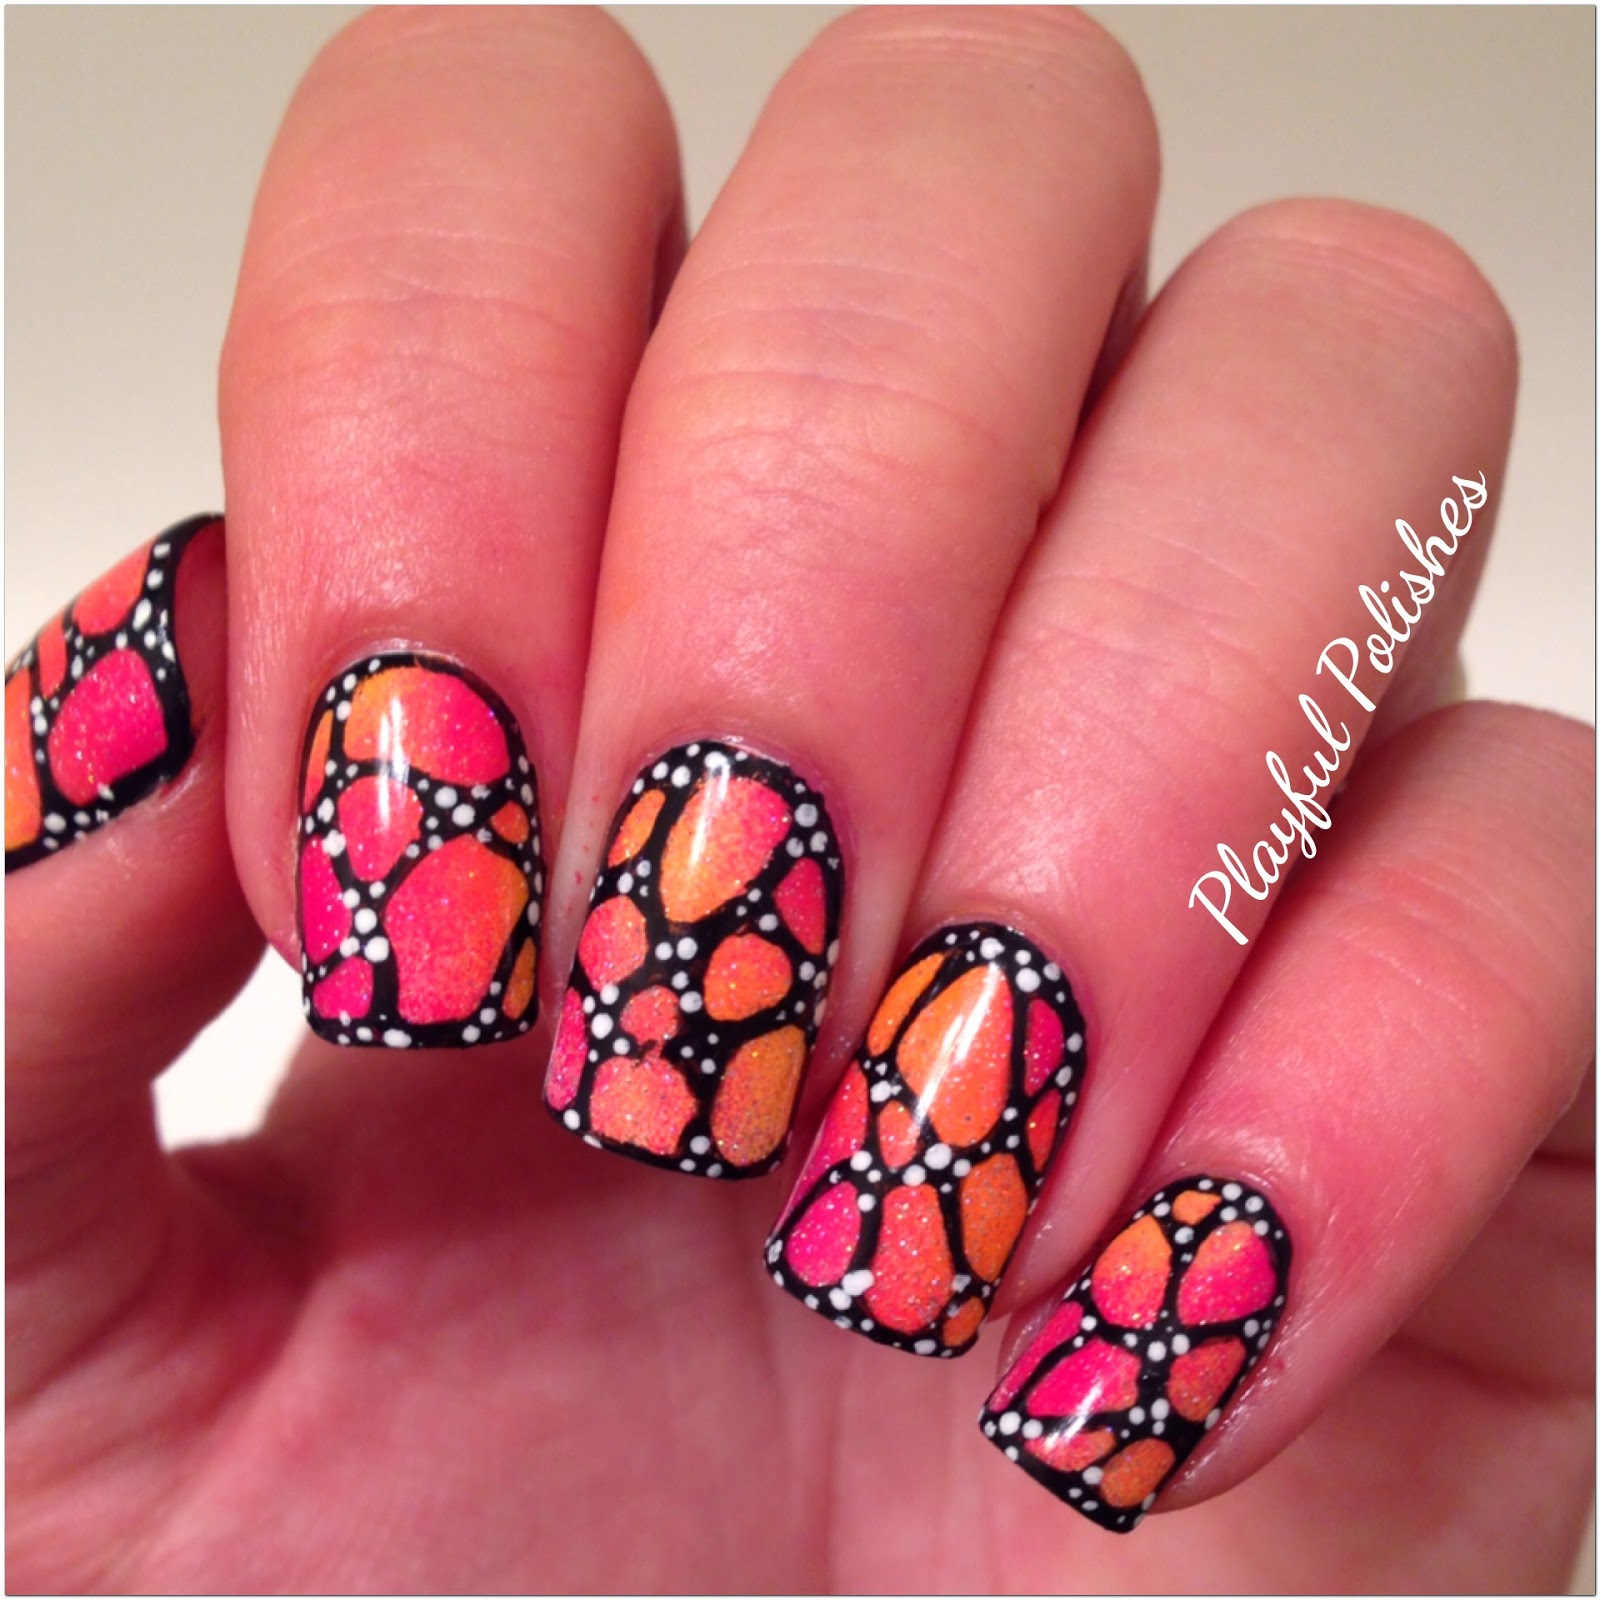 Playful Polishes: BUTTERFLY NAIL ART